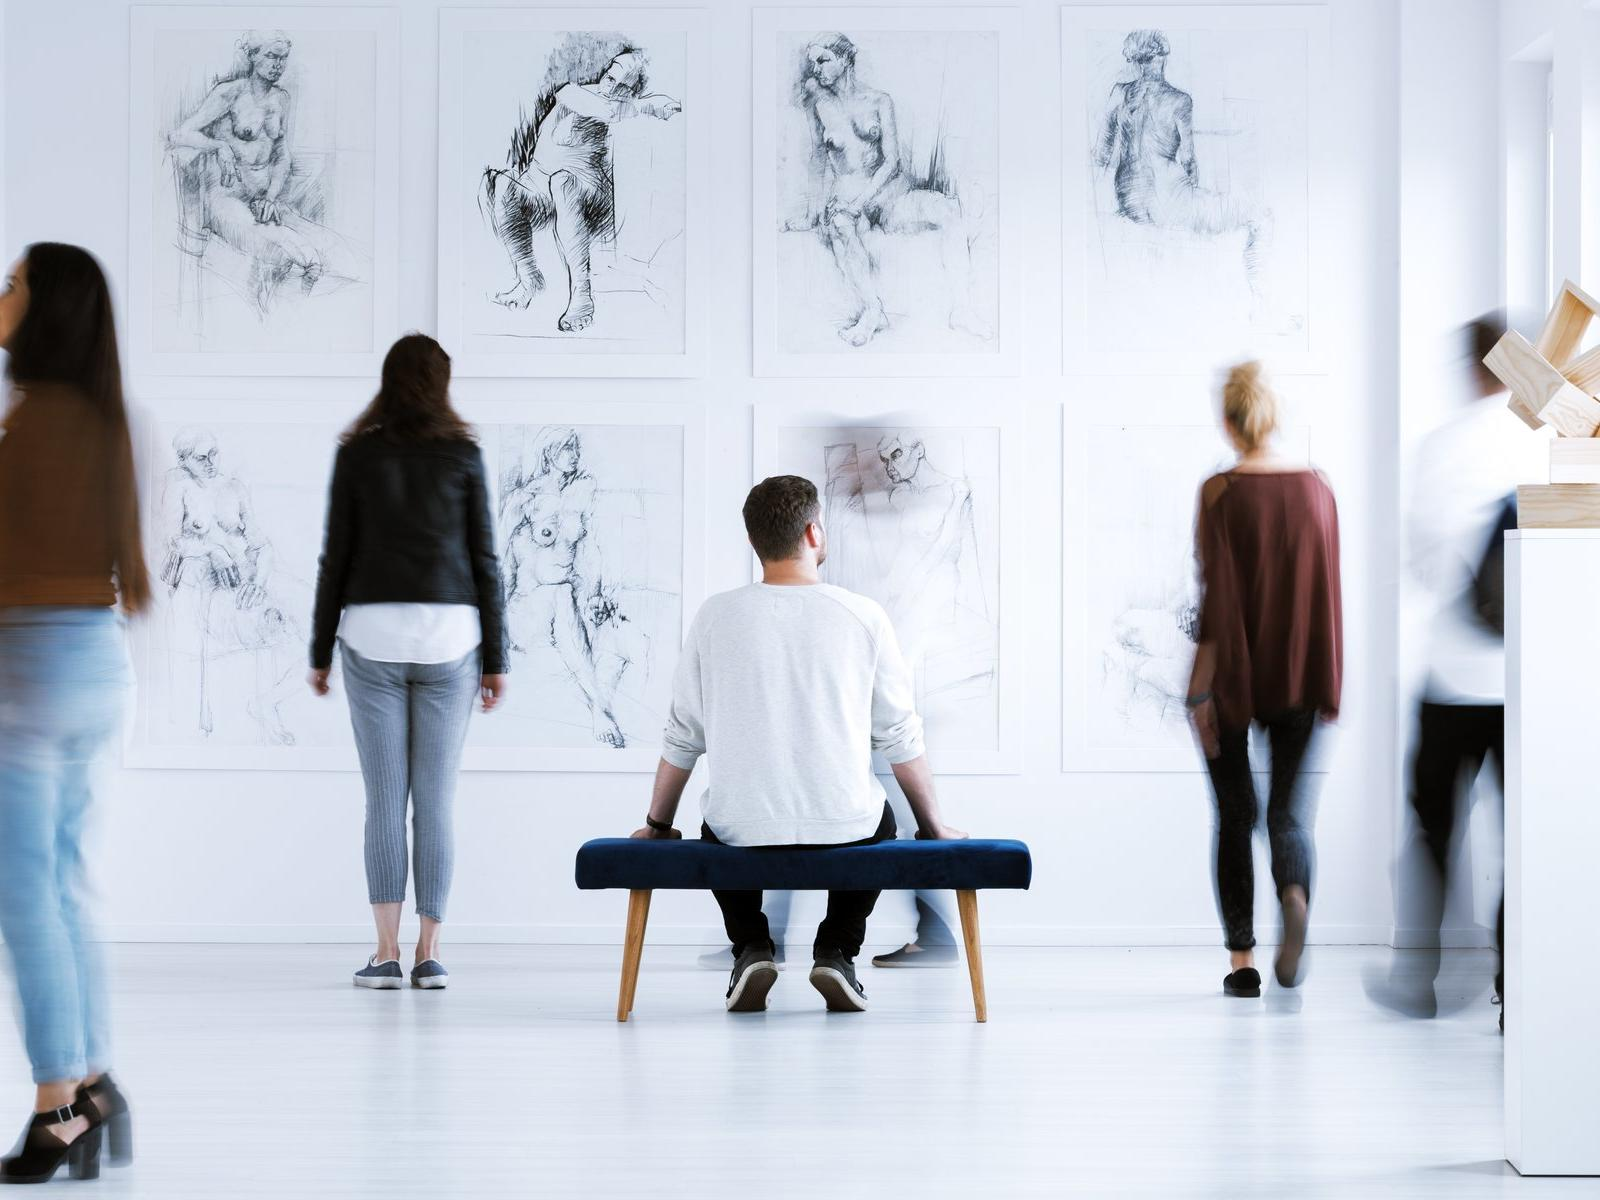 people observing art in a gallery